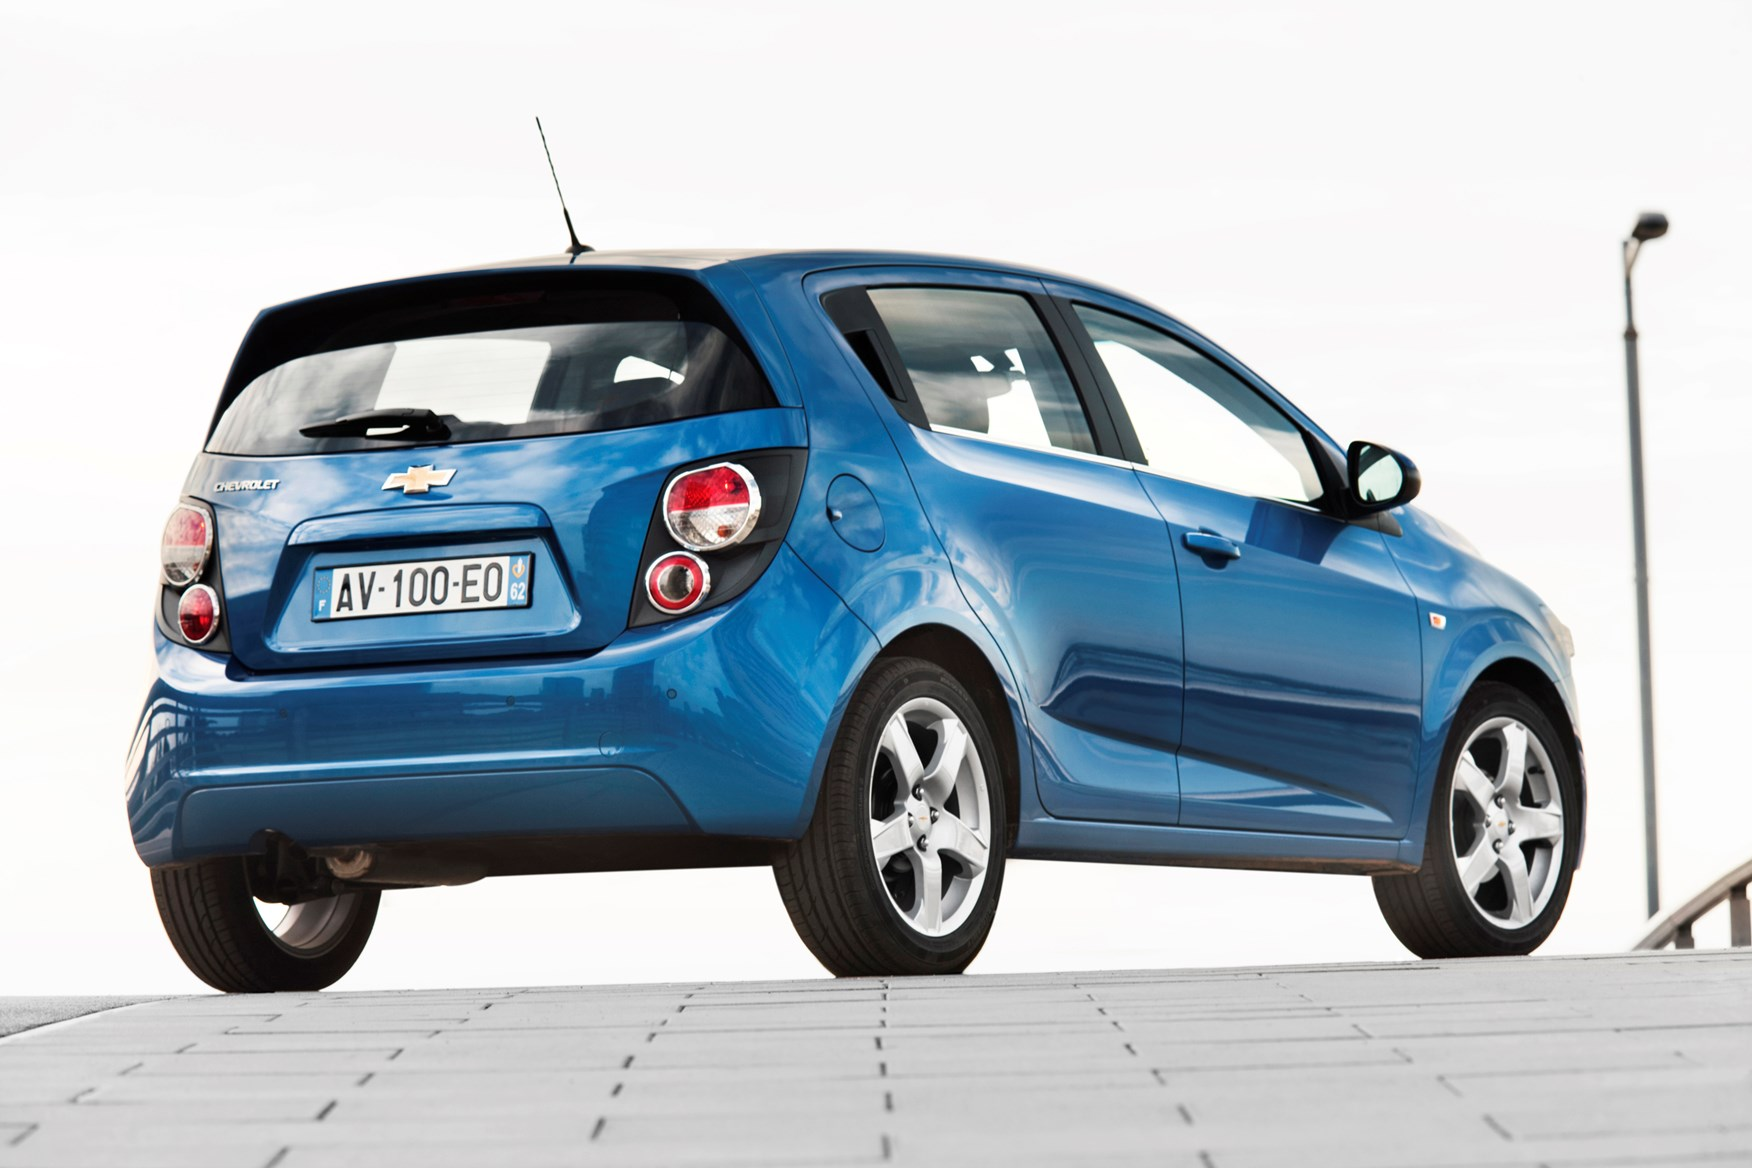 Chevrolet Aveo Hatchback (2011 - 2015) Photos | Parkers